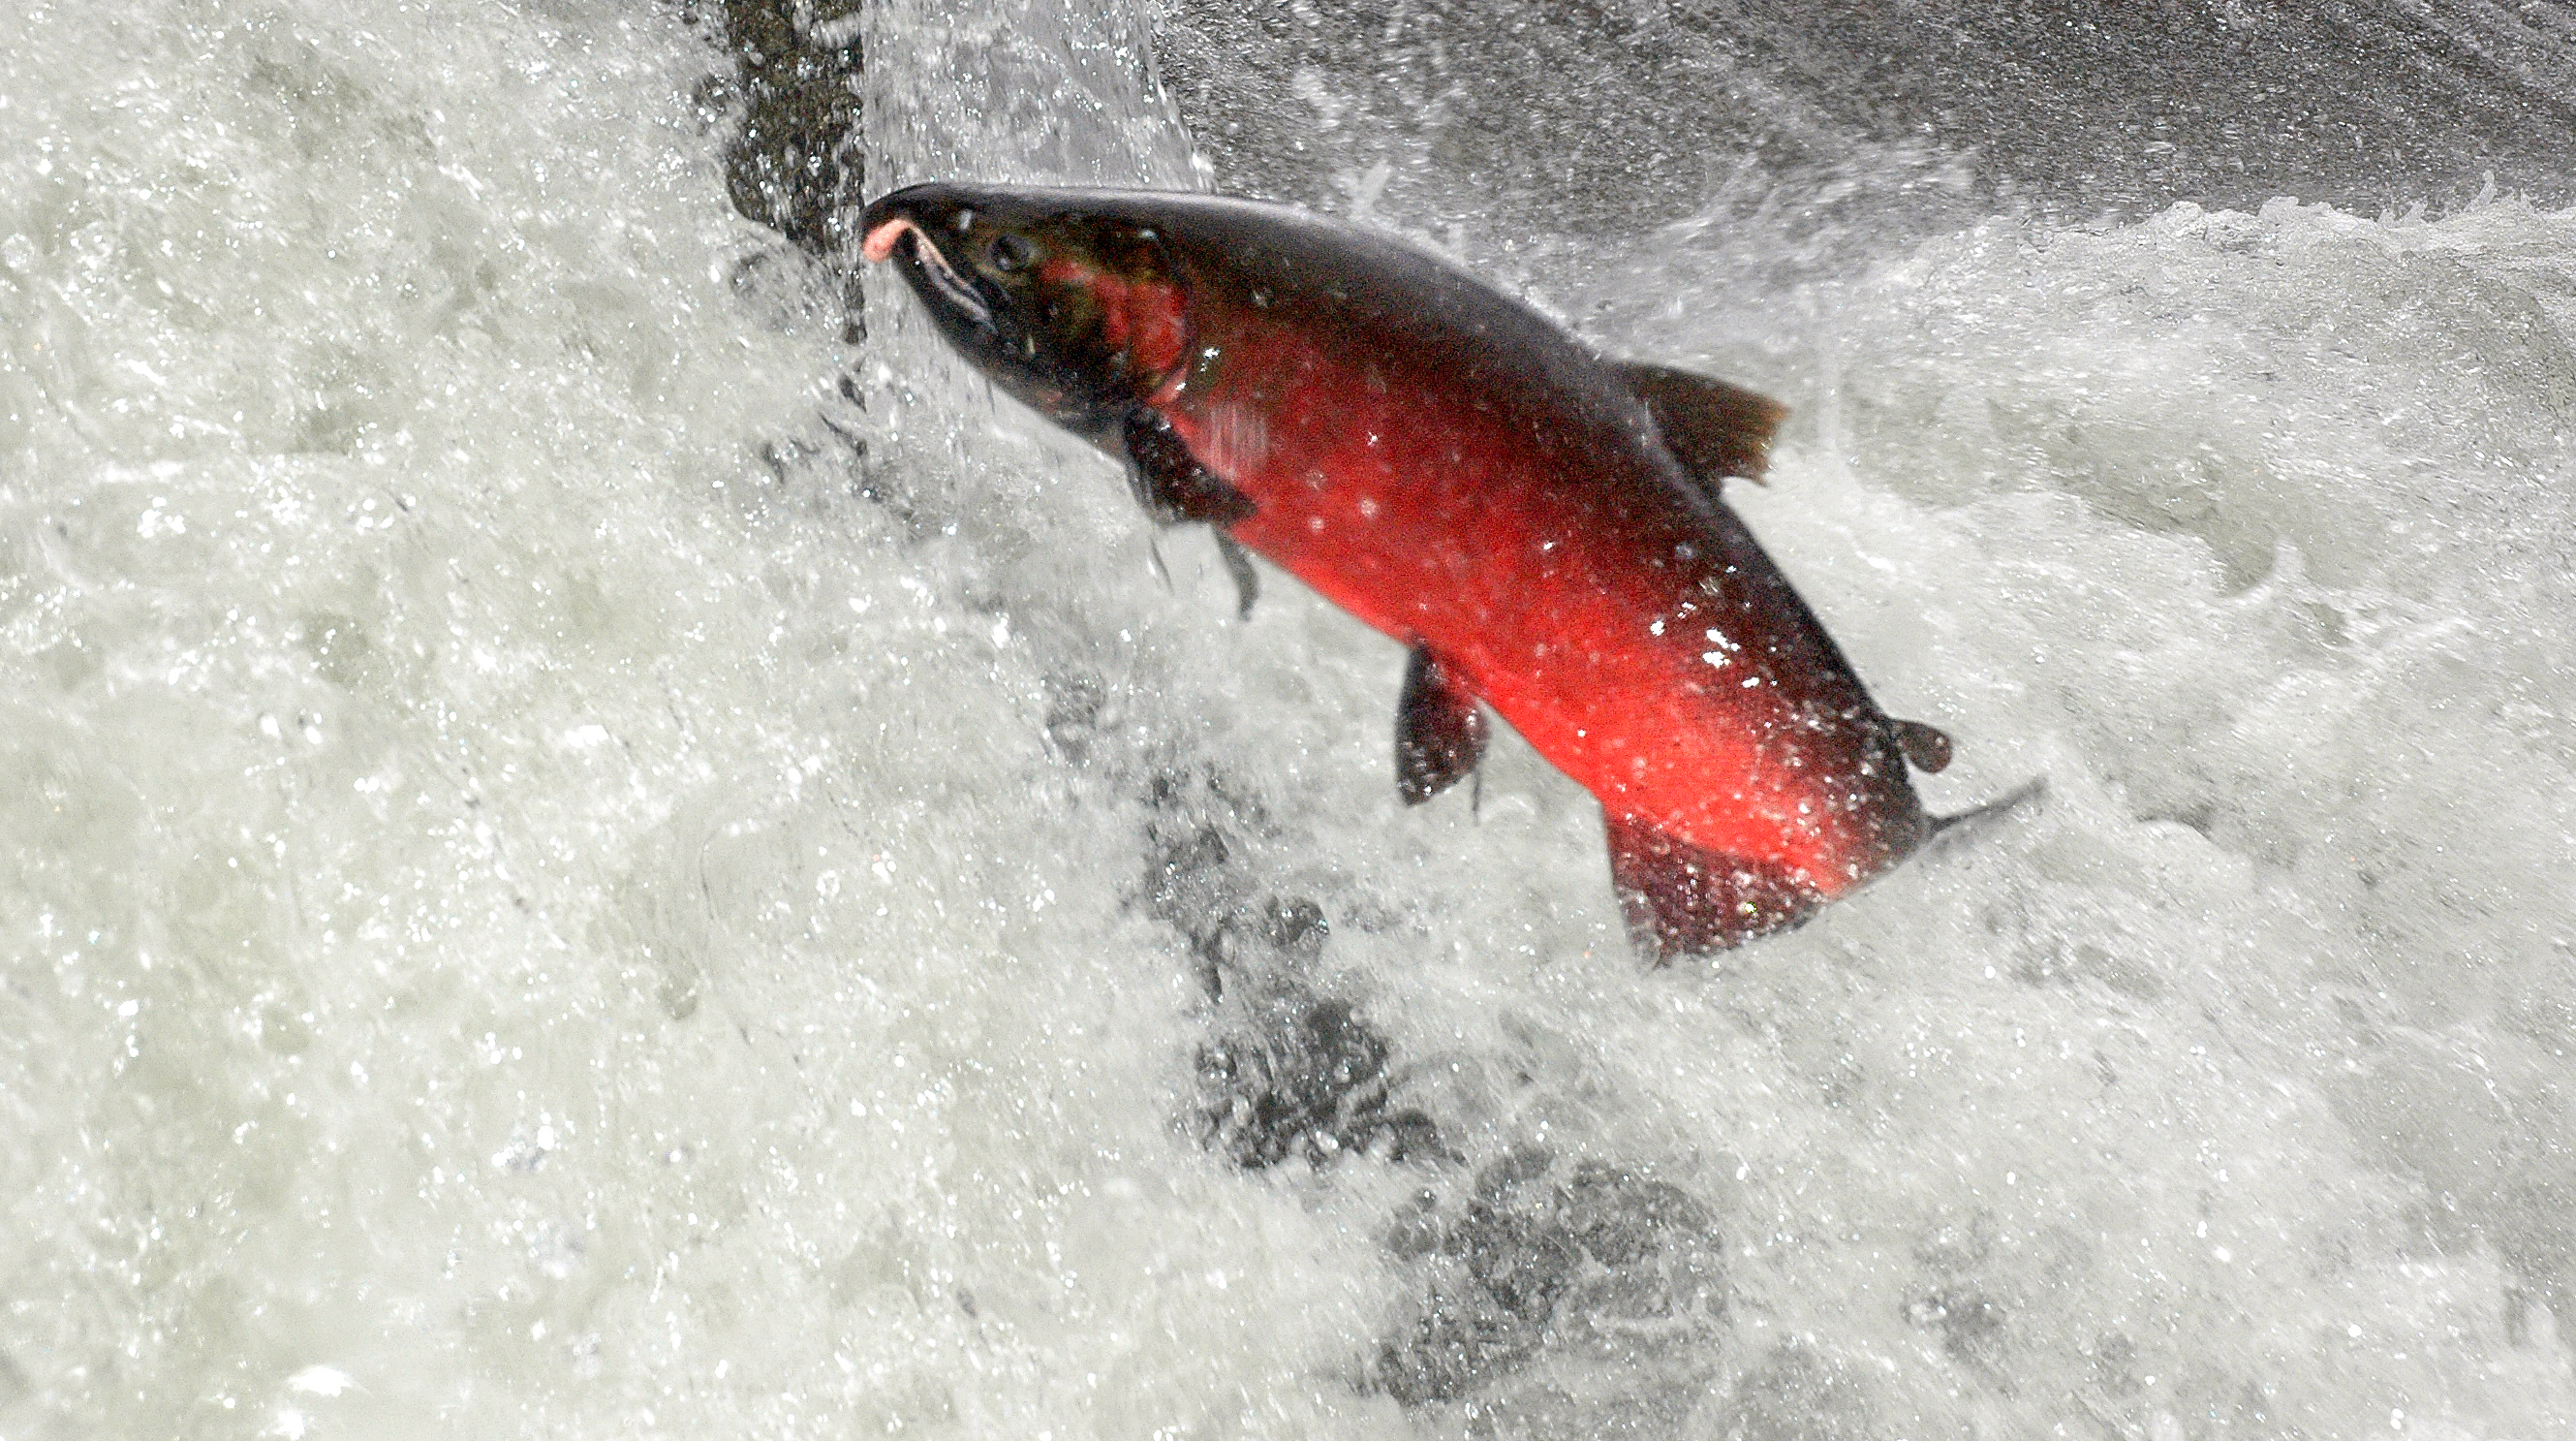 NWIFC Chair receives award for Pacific Salmon Conservation